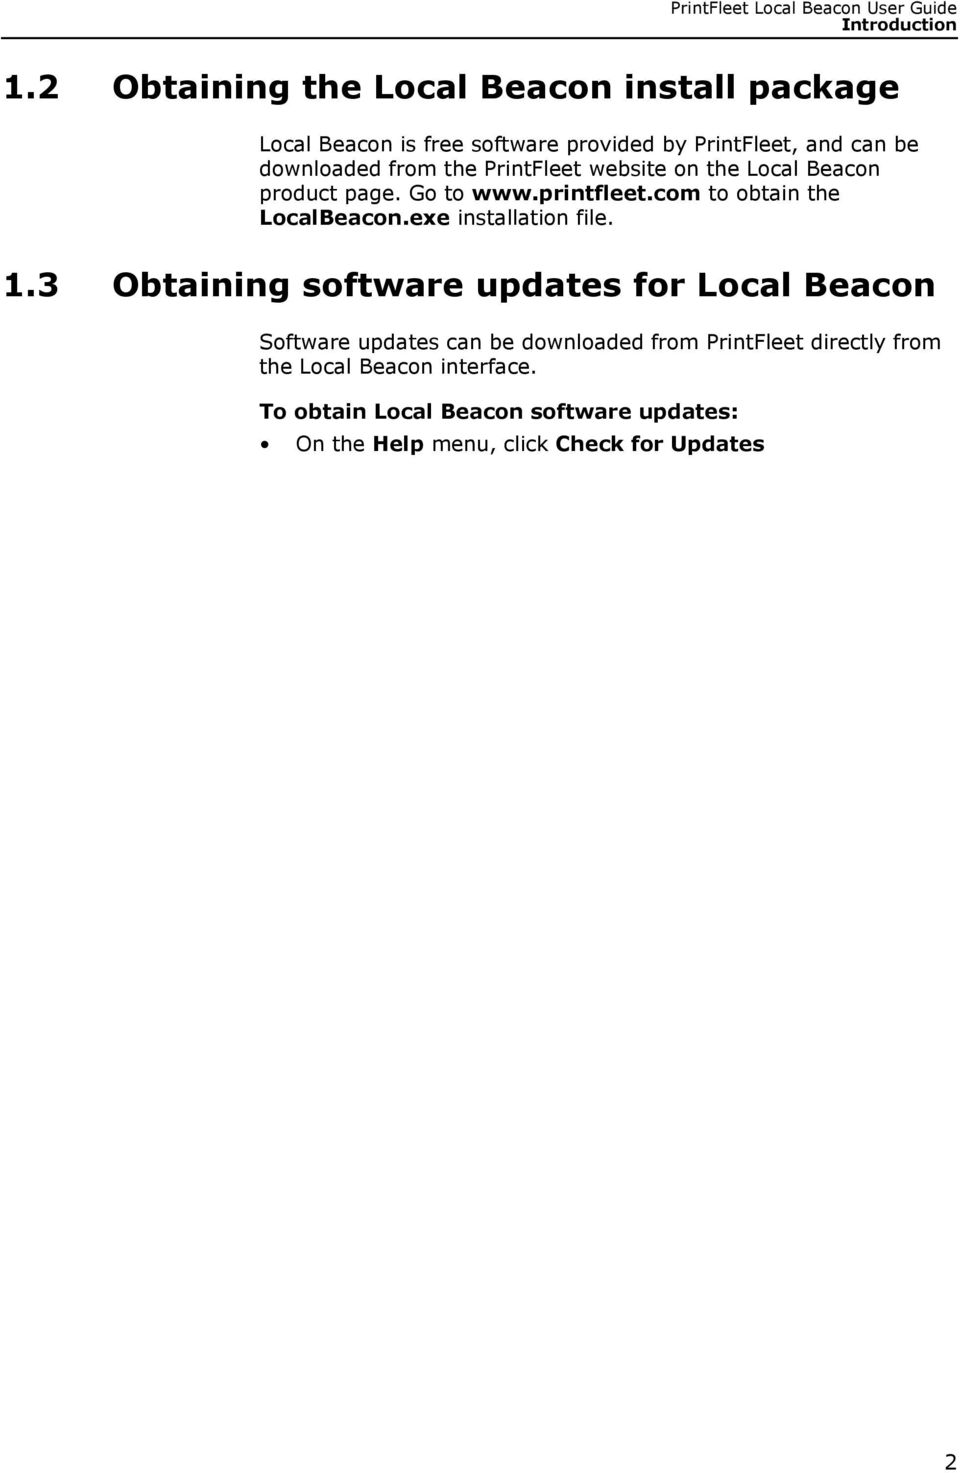 from the PrintFleet website on the Local Beacon product page. Go to www.printfleet.com to obtain the LocalBeacon.